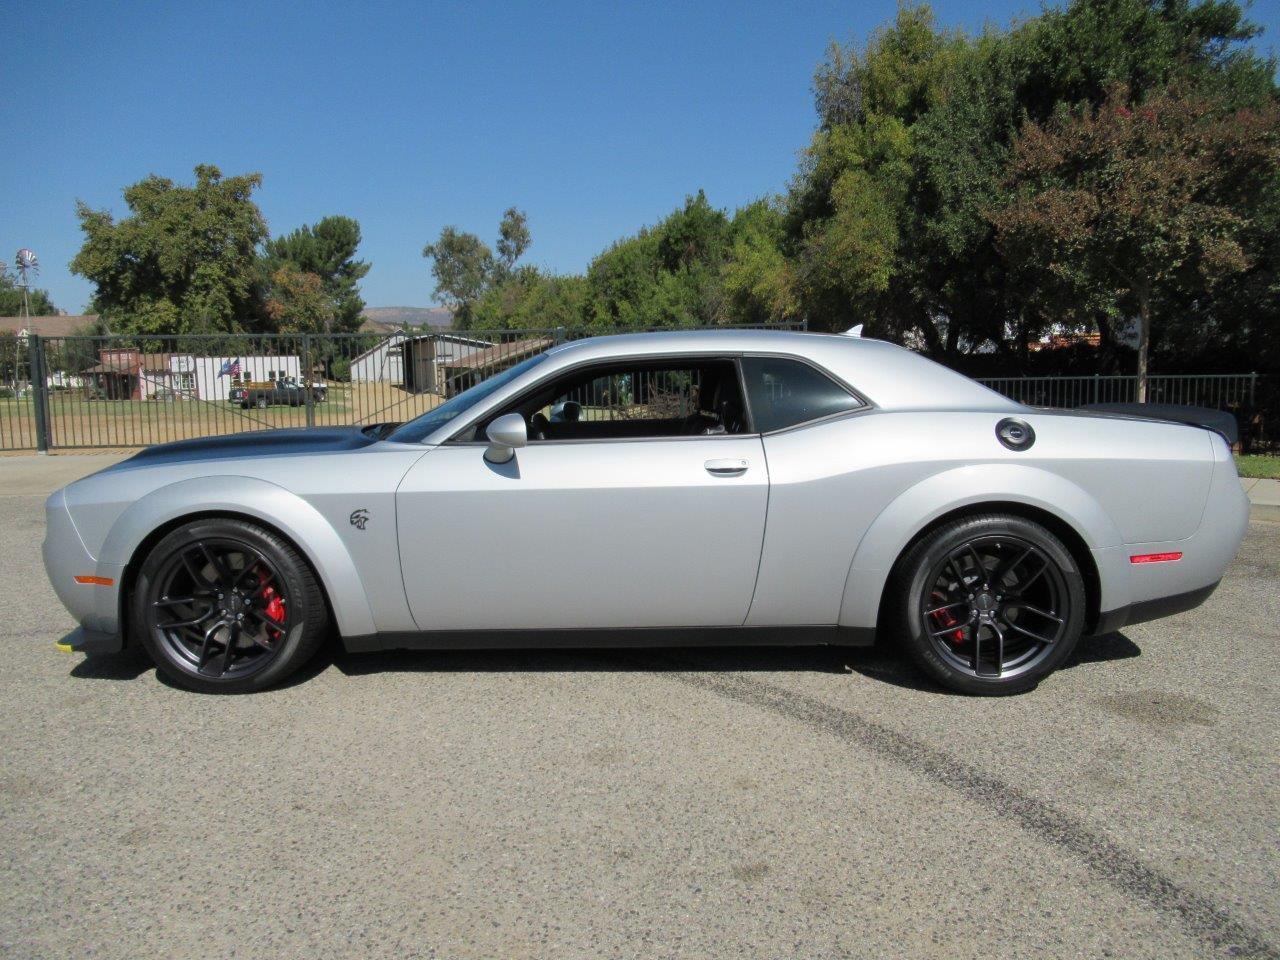 2019 Dodge Challenger (CC-1413369) for sale in Simi Valley, California